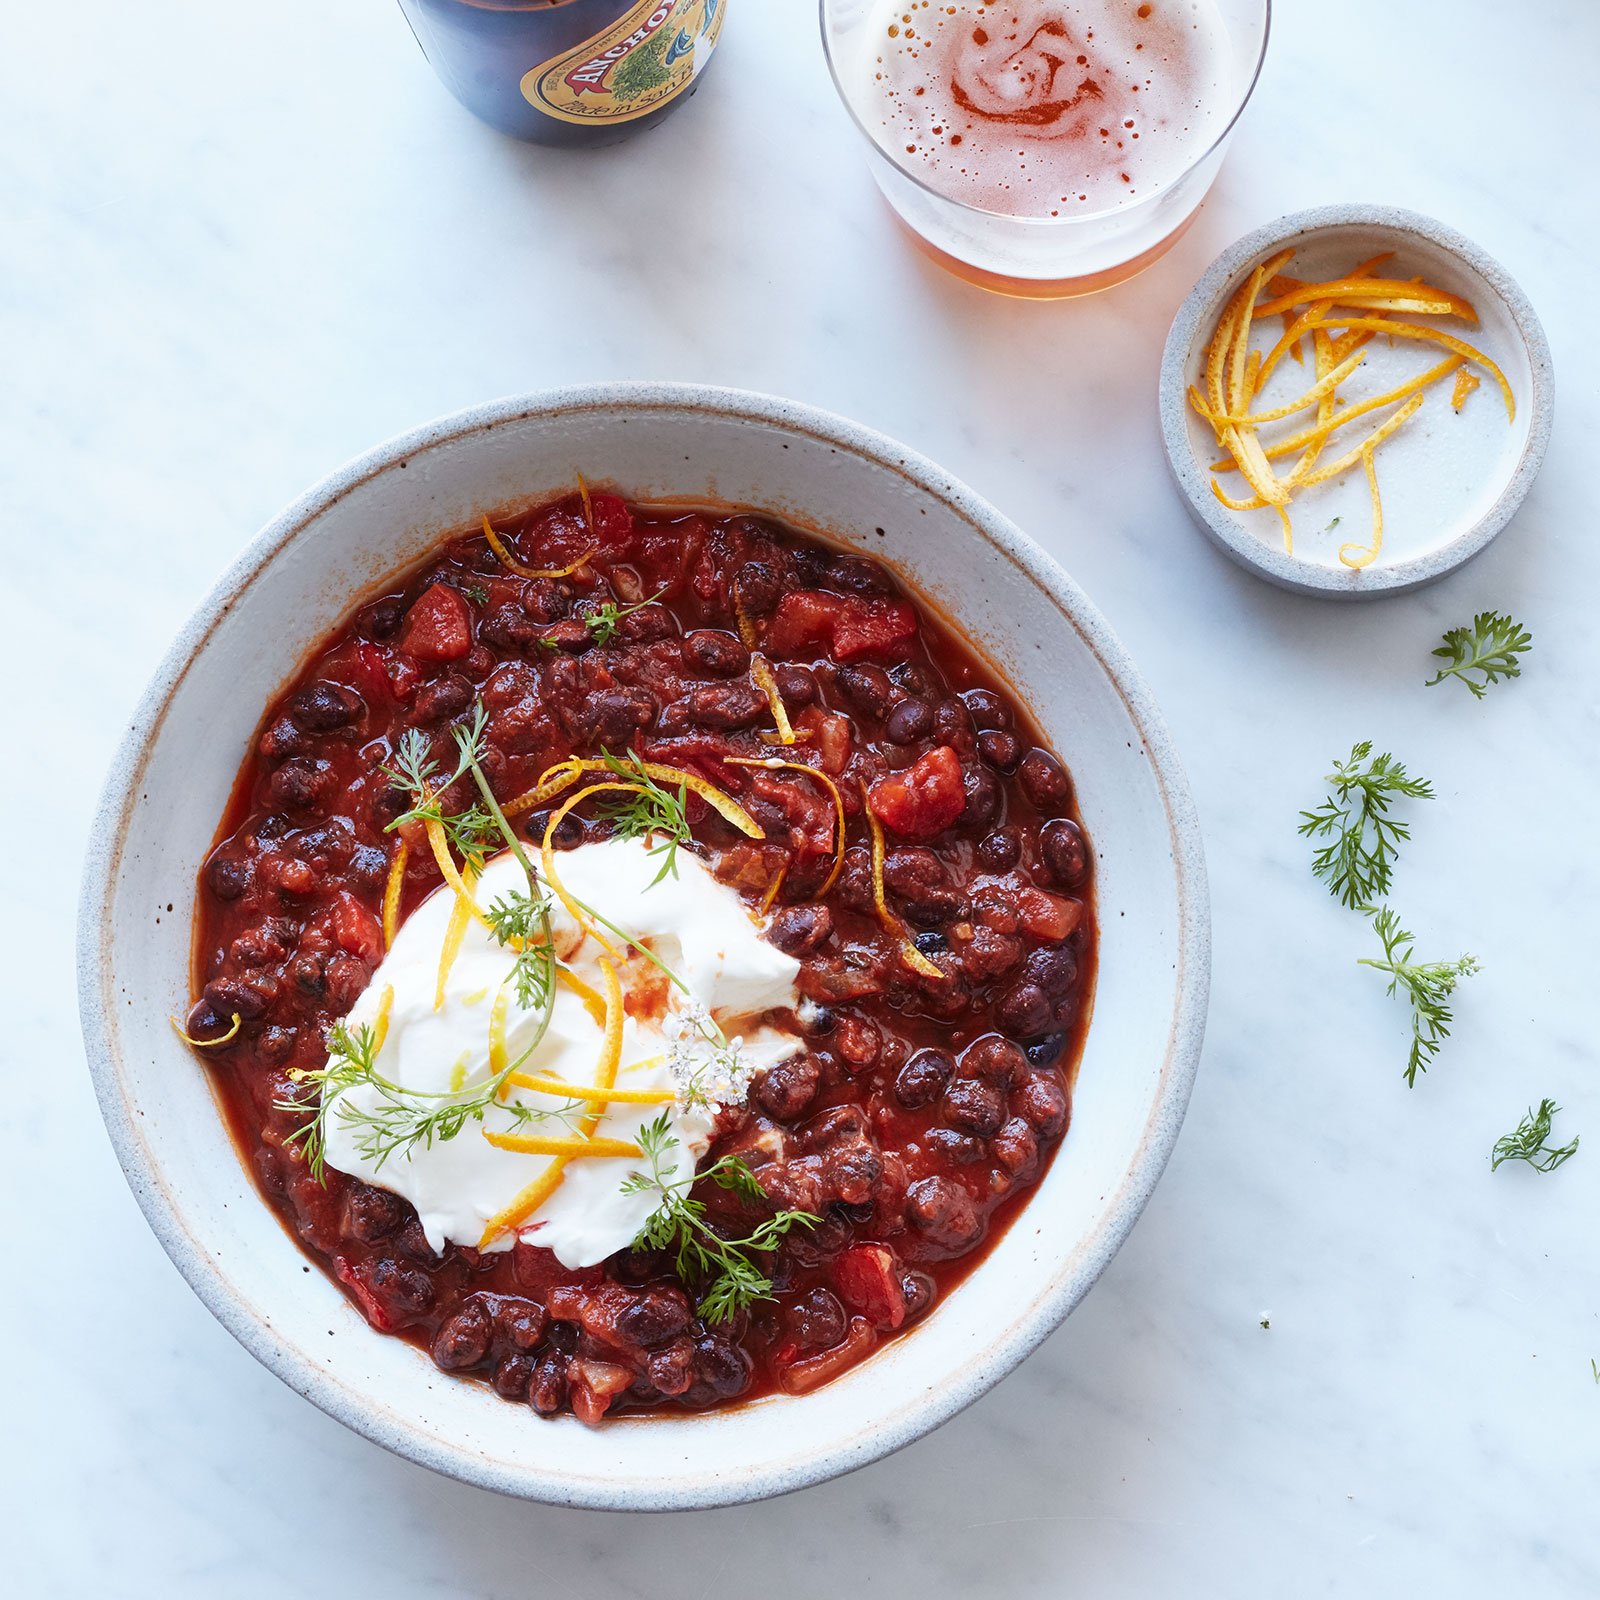 Vegetarian Black Bean Chili with Ancho and Orange